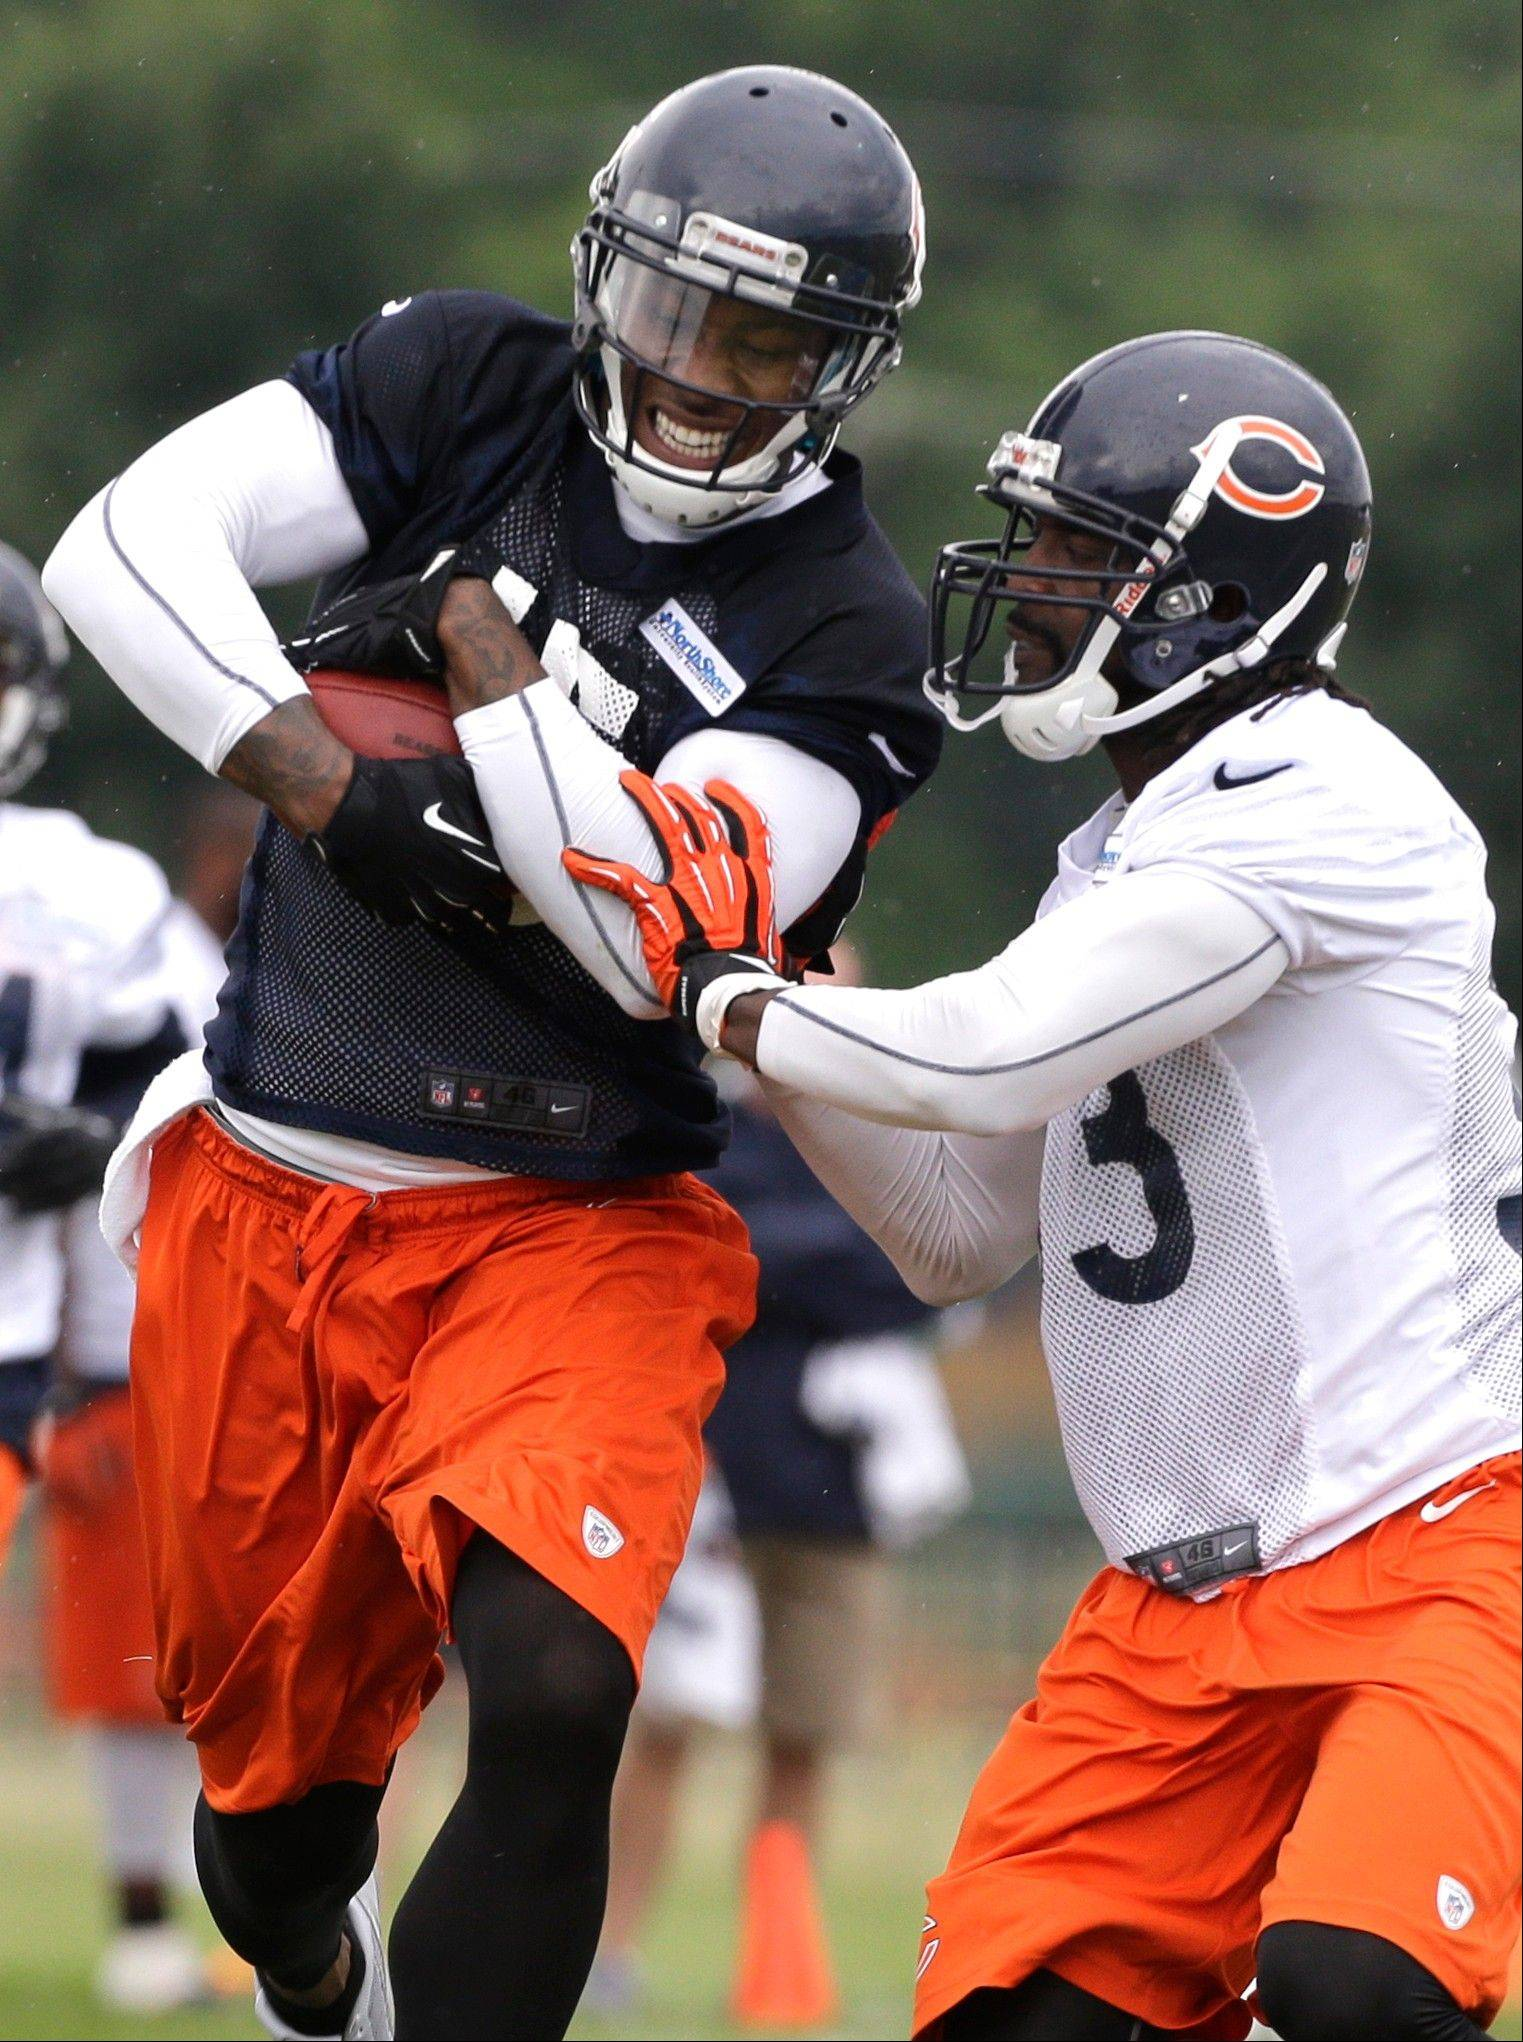 Chicago Bears wide receiver Brandon Marshall, left, runs with a ball against cornerback Charles Tillman.